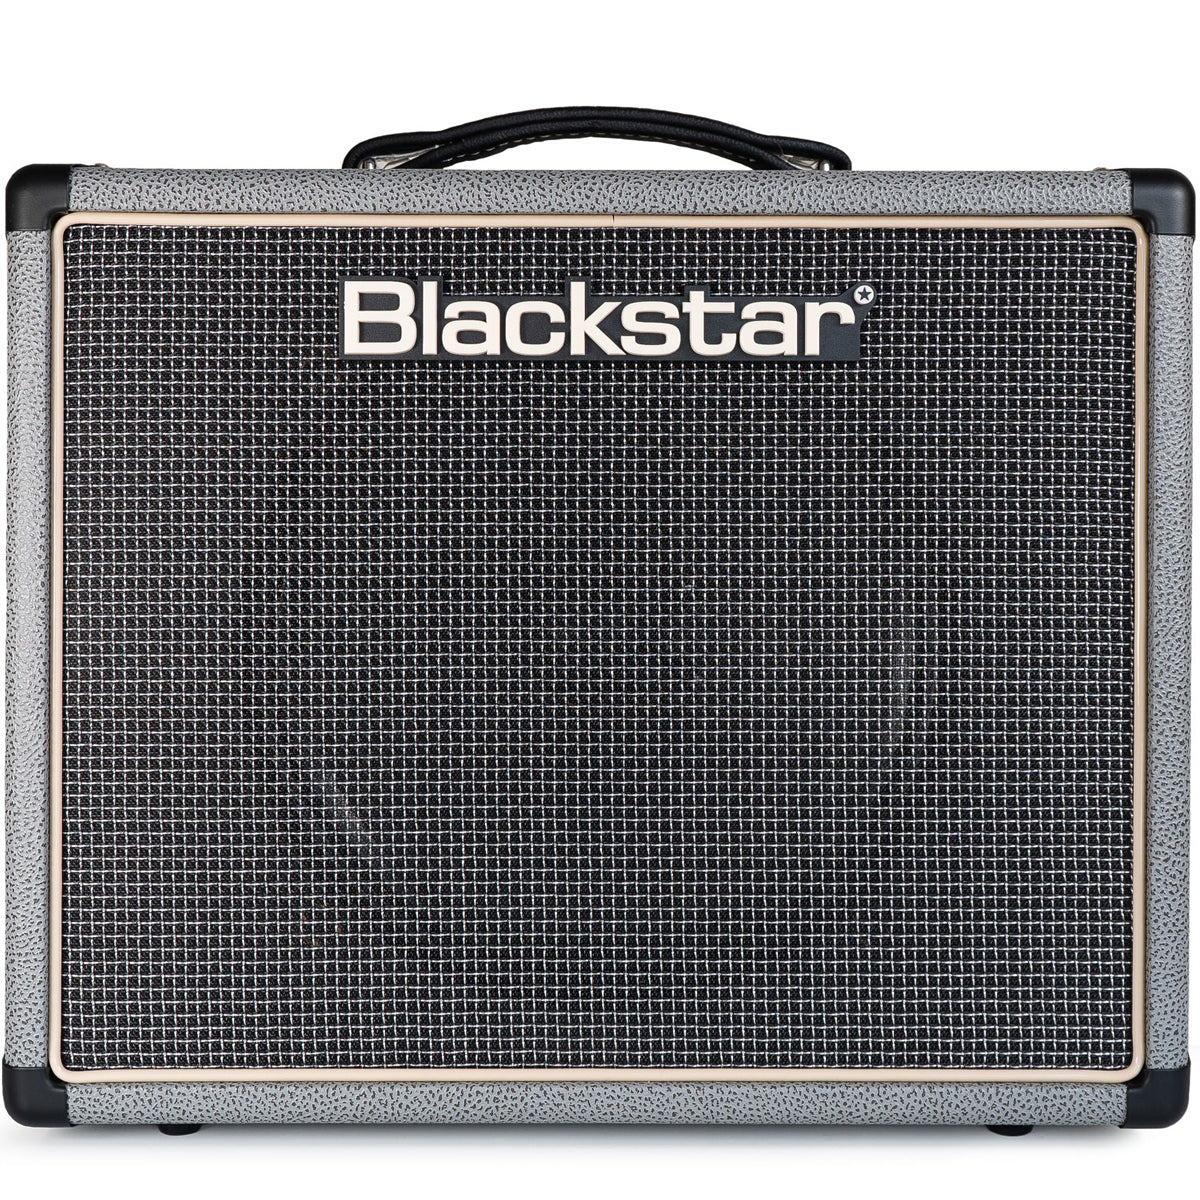 Blackstar HT-5R MKII Guitar Amplifier 5w Combo Amp LIMITED EDITION Bronco Grey